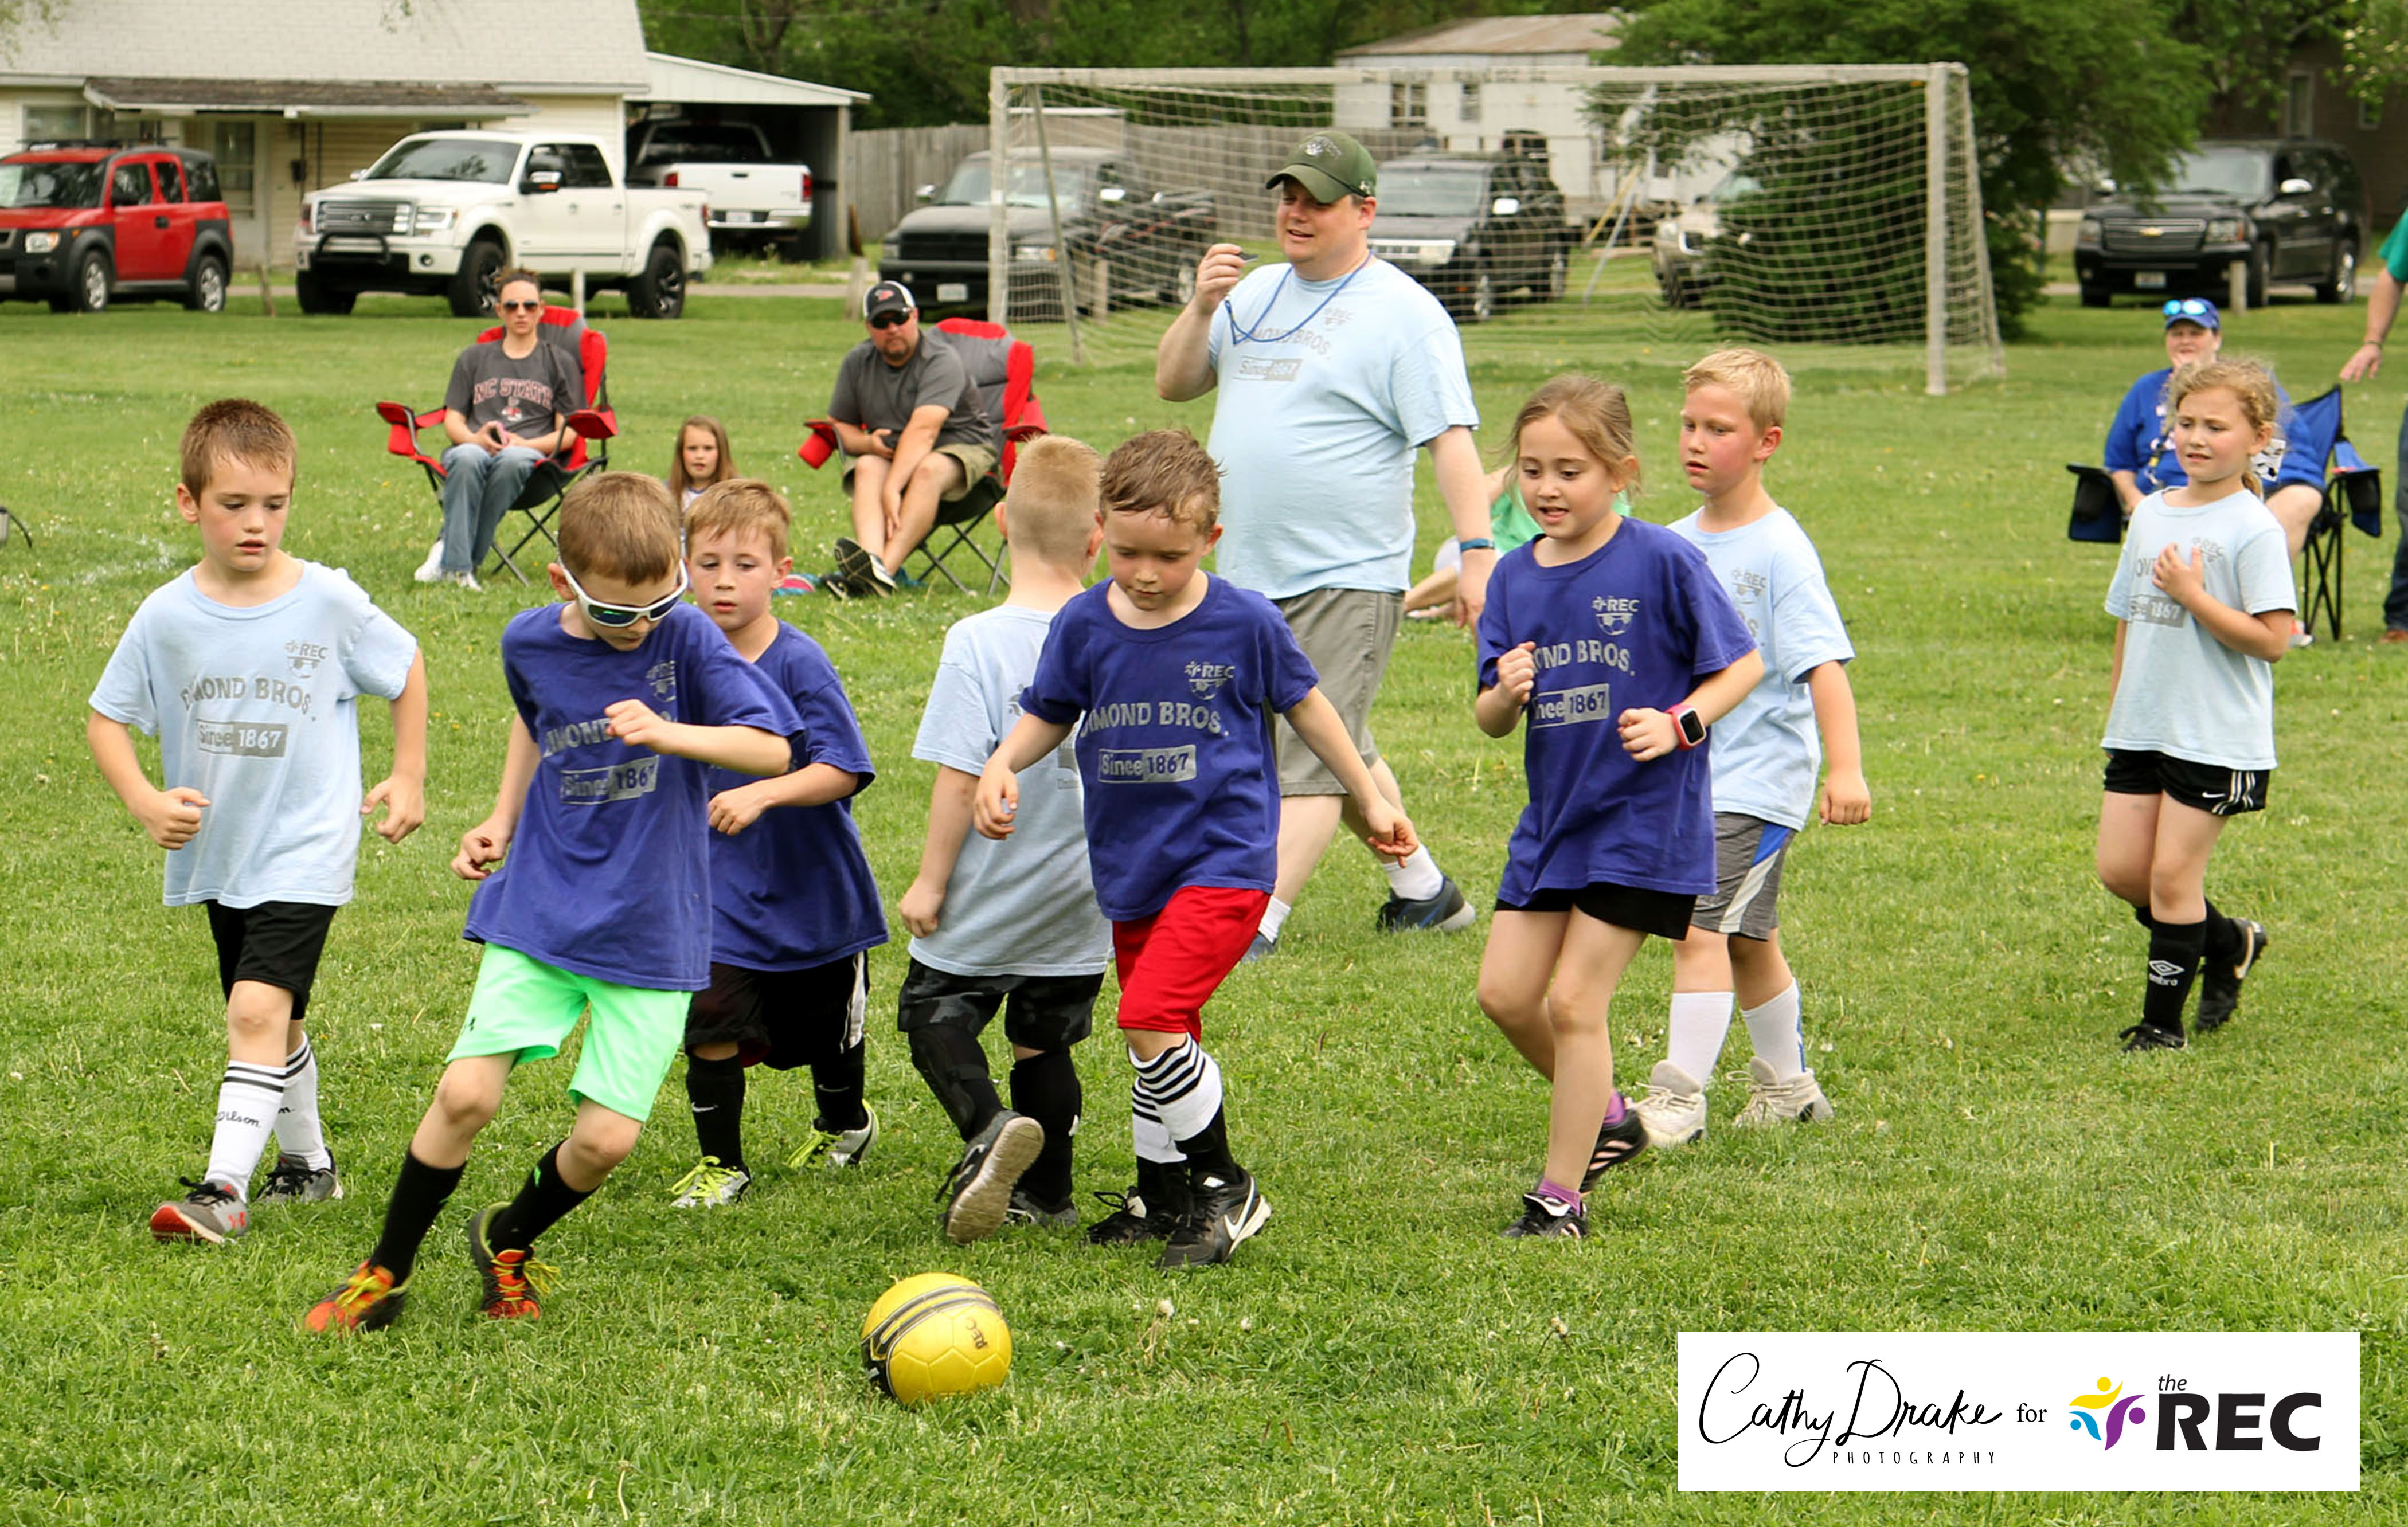 Youth Soccer – The Paris Rec